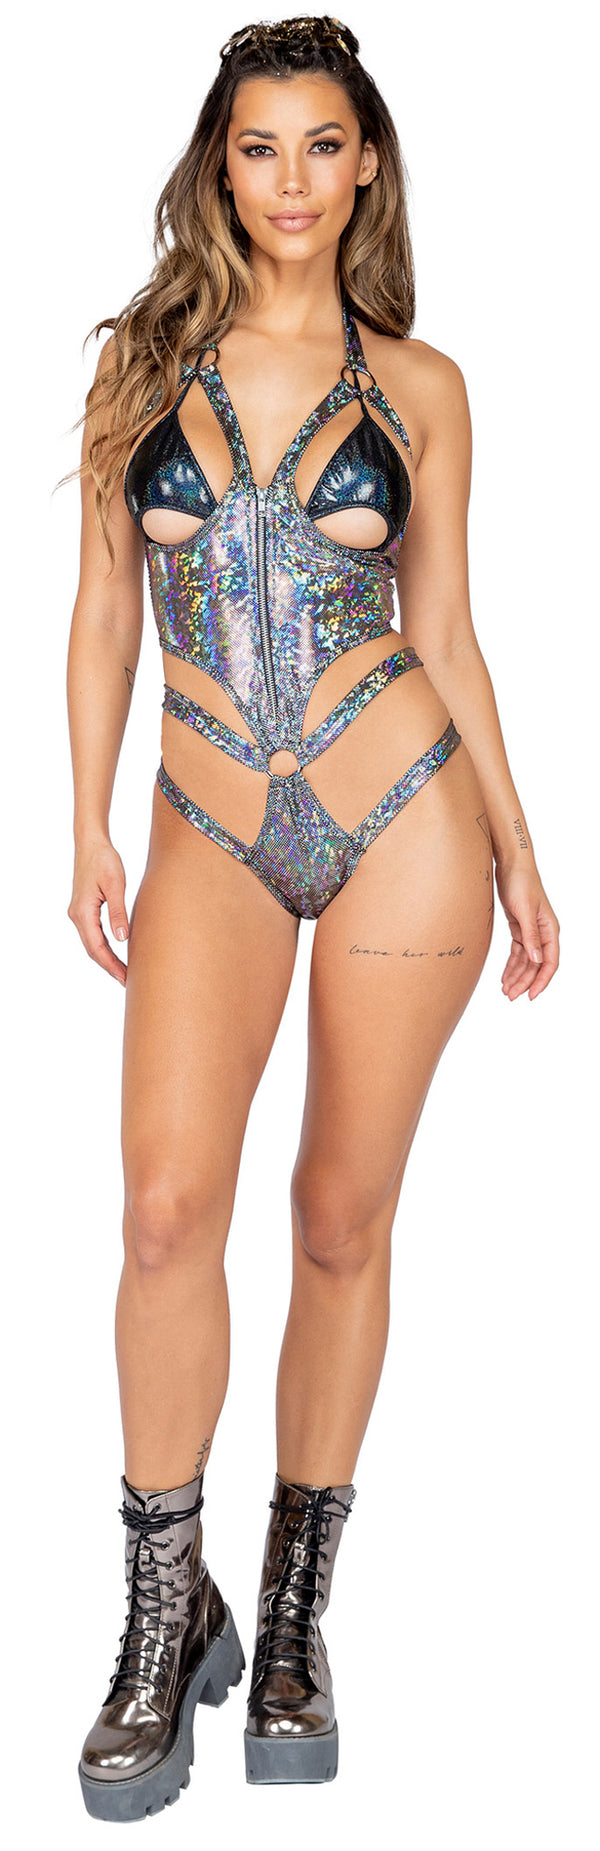 1pc Open Cup Shimmer Romper